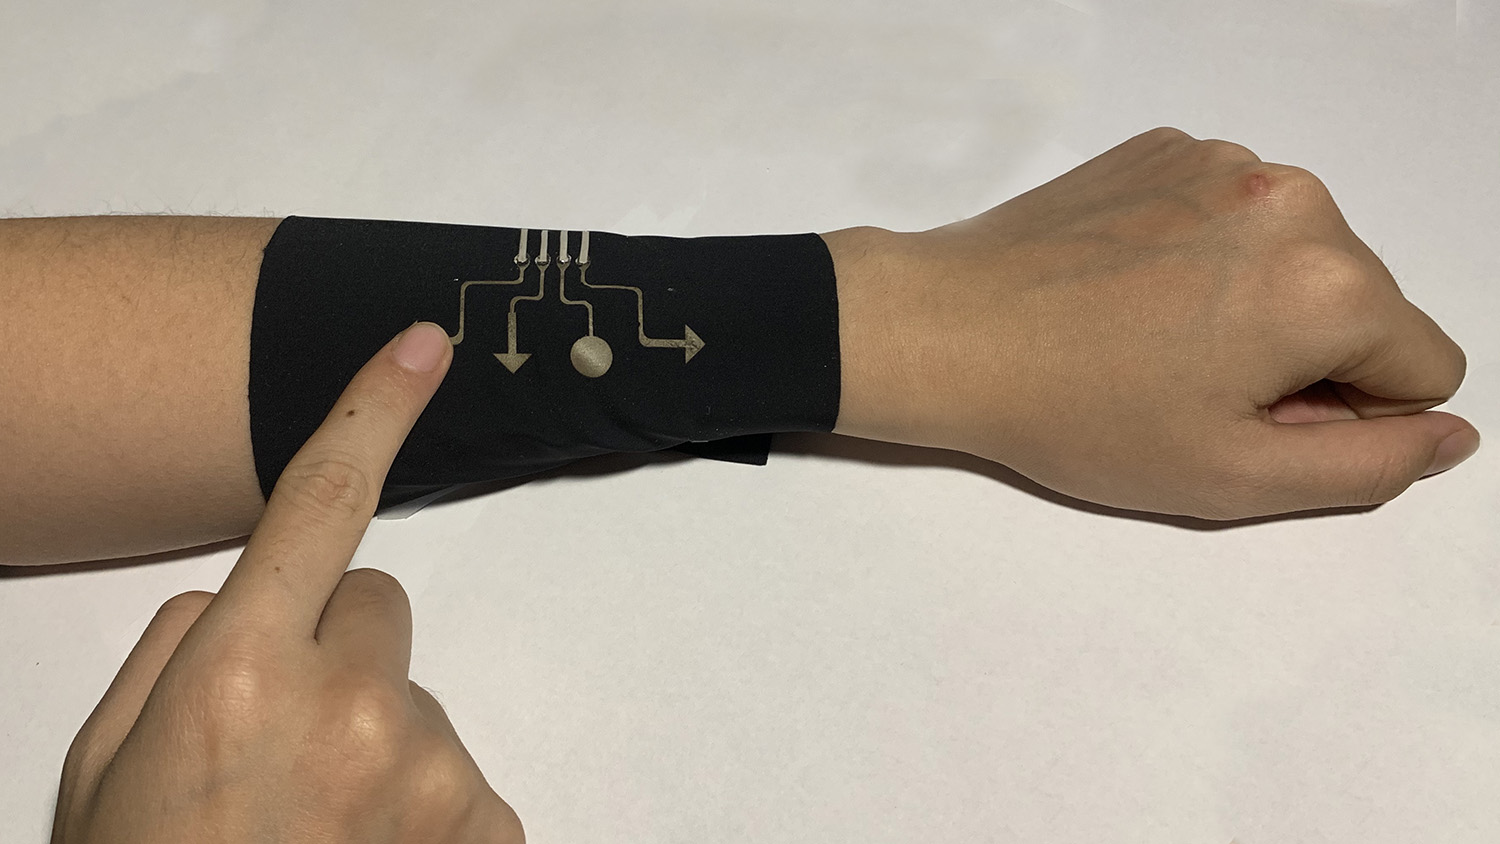 fabric sleeve that is also a video game controller